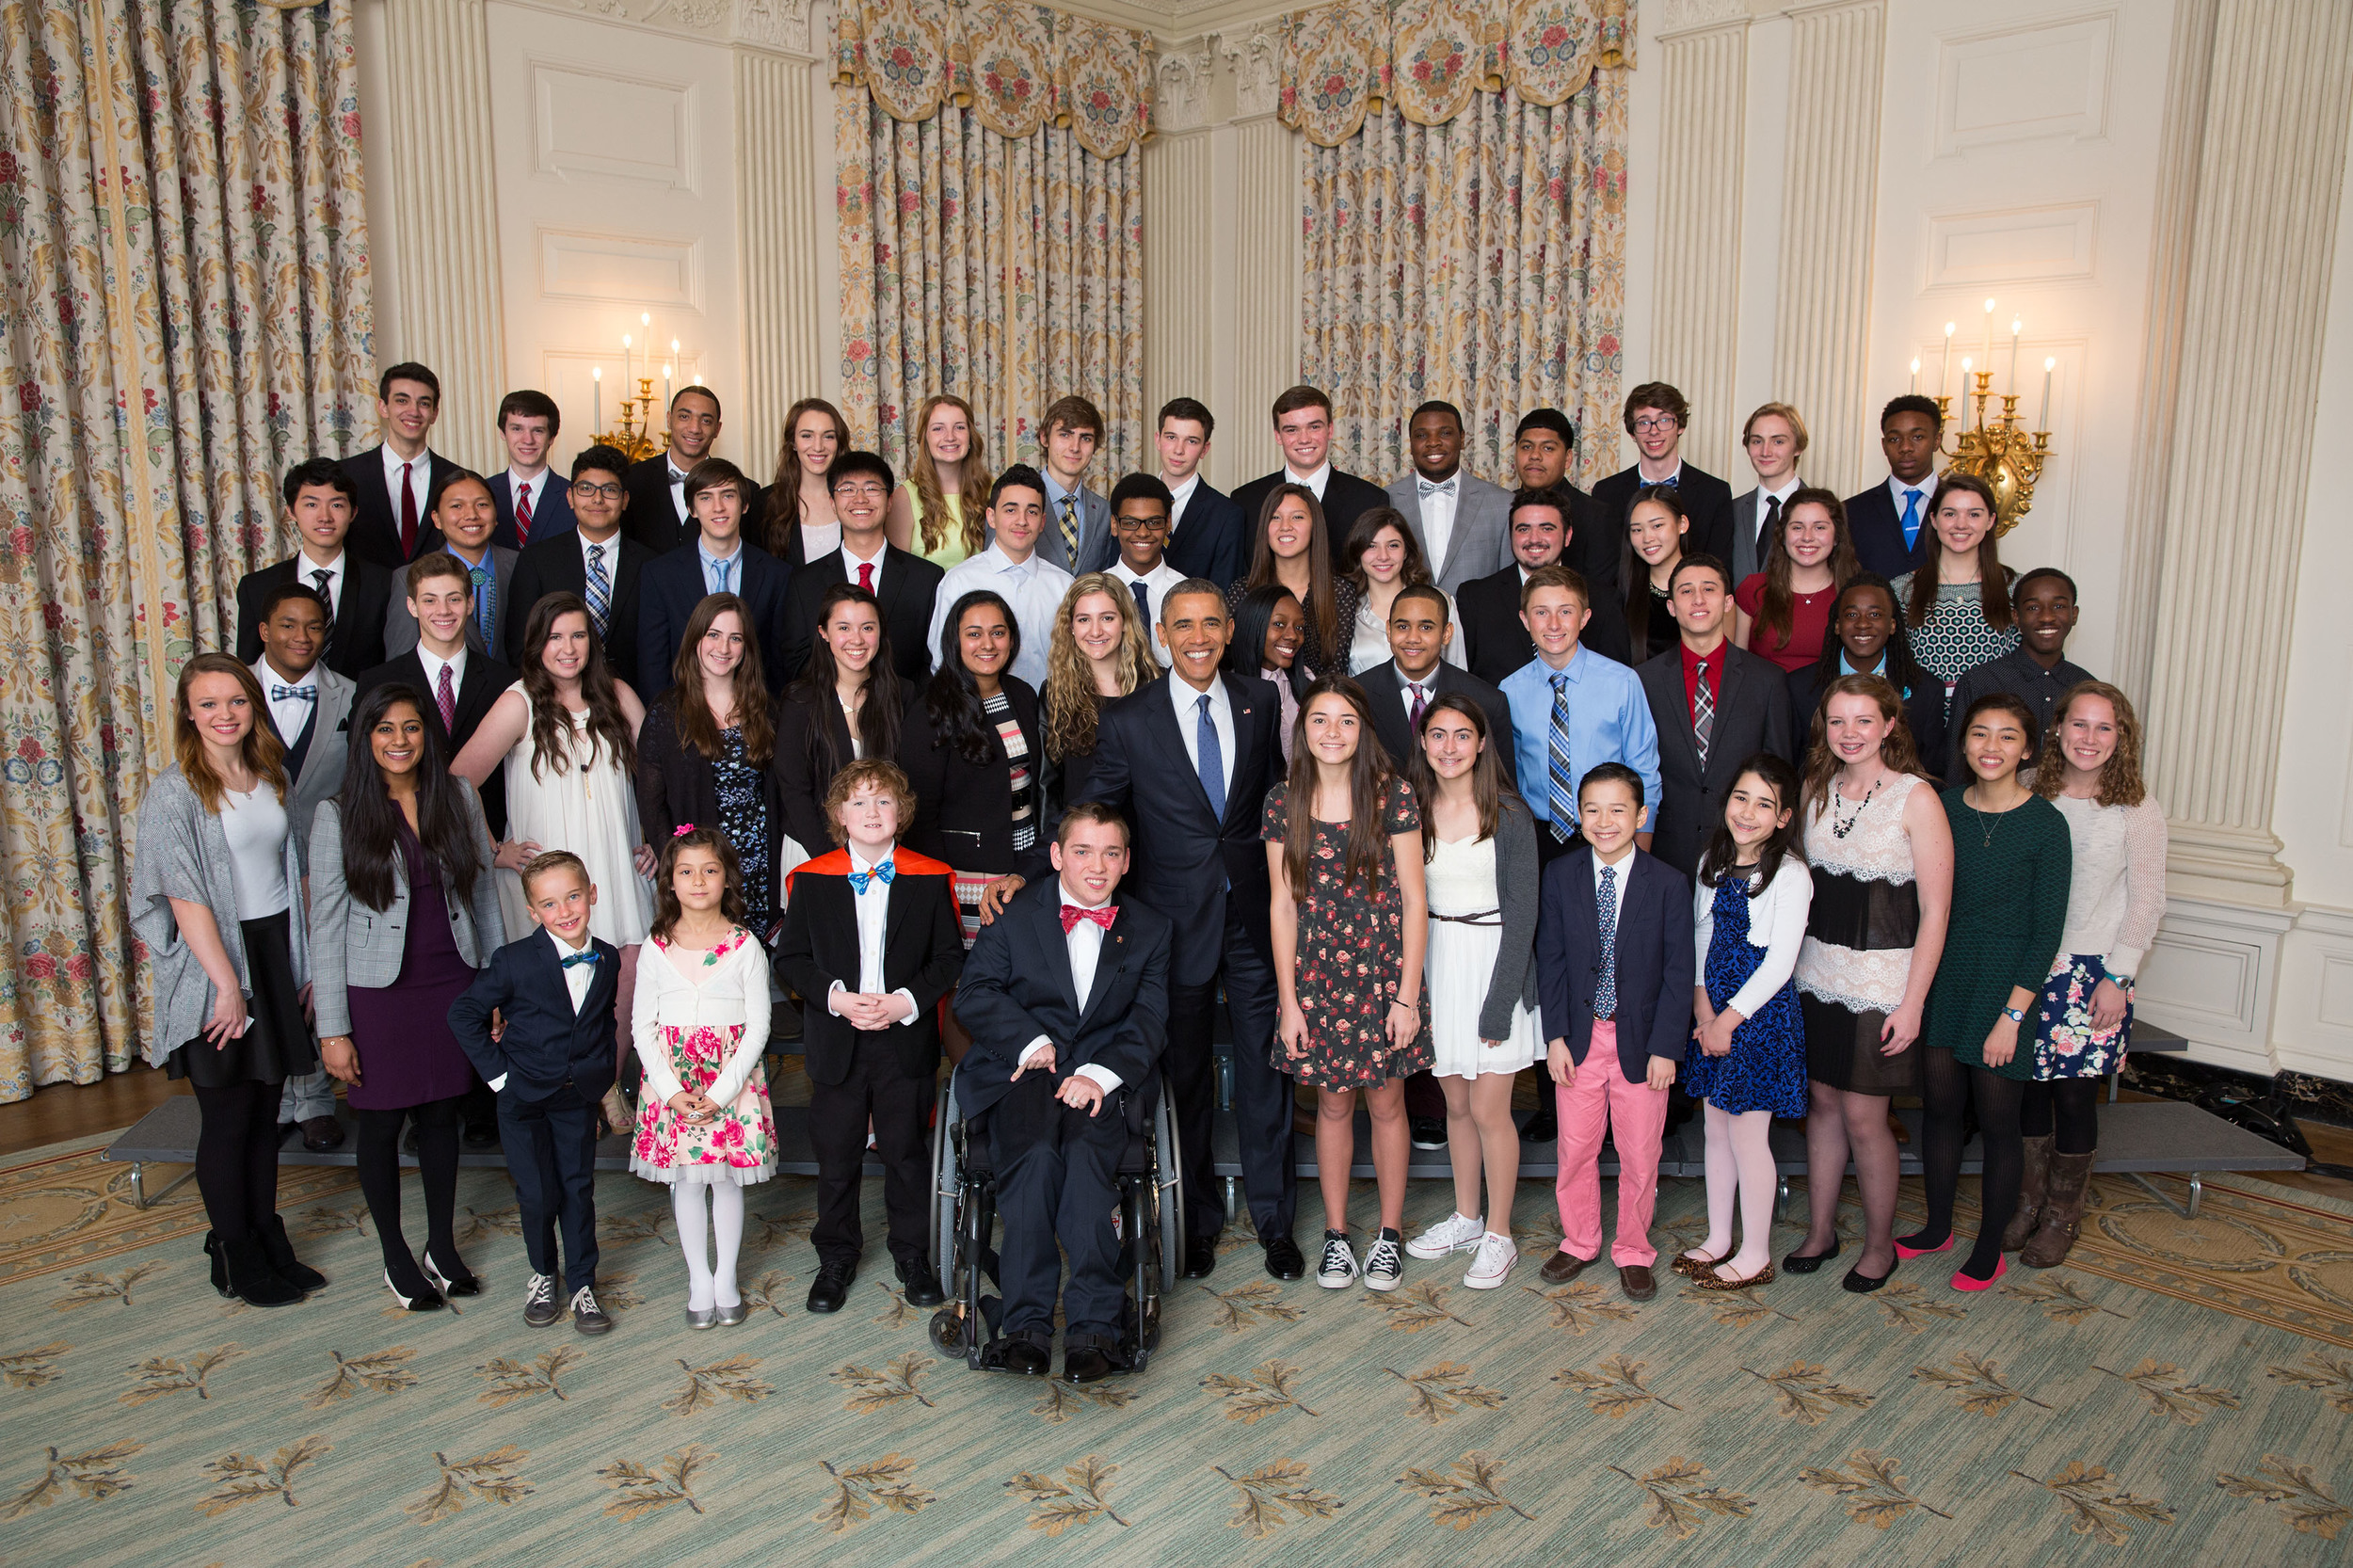 """I am directly to the left of President Obama.This photo was taken at the 2015 White House Student Film Festival, where G.I.V.E.'s entry """"The Impact of G.I.V.E."""" won honorable mention     March 20th was one of the greatest days of my life. The President's smile lit up the room and his positive energy was contagious.  The White House Student Film Festival has given me hope that my generation is doing everything we can to make the world a better place. The Festival has also given me a newfound responsability: to be grateful.   T he youngest and cutest winner, Noah, said """"Look closely. If you don't stop to look around, you're going to miss it,""""   (As stated in his award winning   short film  ).    Life moves pretty fast. It is up to us to stop, look around and say """"Thank you.""""    GIVE has taken me to the White House, the TEDx stage, my pen pal Suma in Bangalore, India, and across the world. But the journey that I am most grateful for, is the one I least expected. GIVE has taken me on a journey to myself. I have found Daniella, by getting lost in the service to others. I am still learning how to embody Noah's wise words but, I have learned the following in the process:  Life moves fast. Look closely. Say """"Thank you."""""""